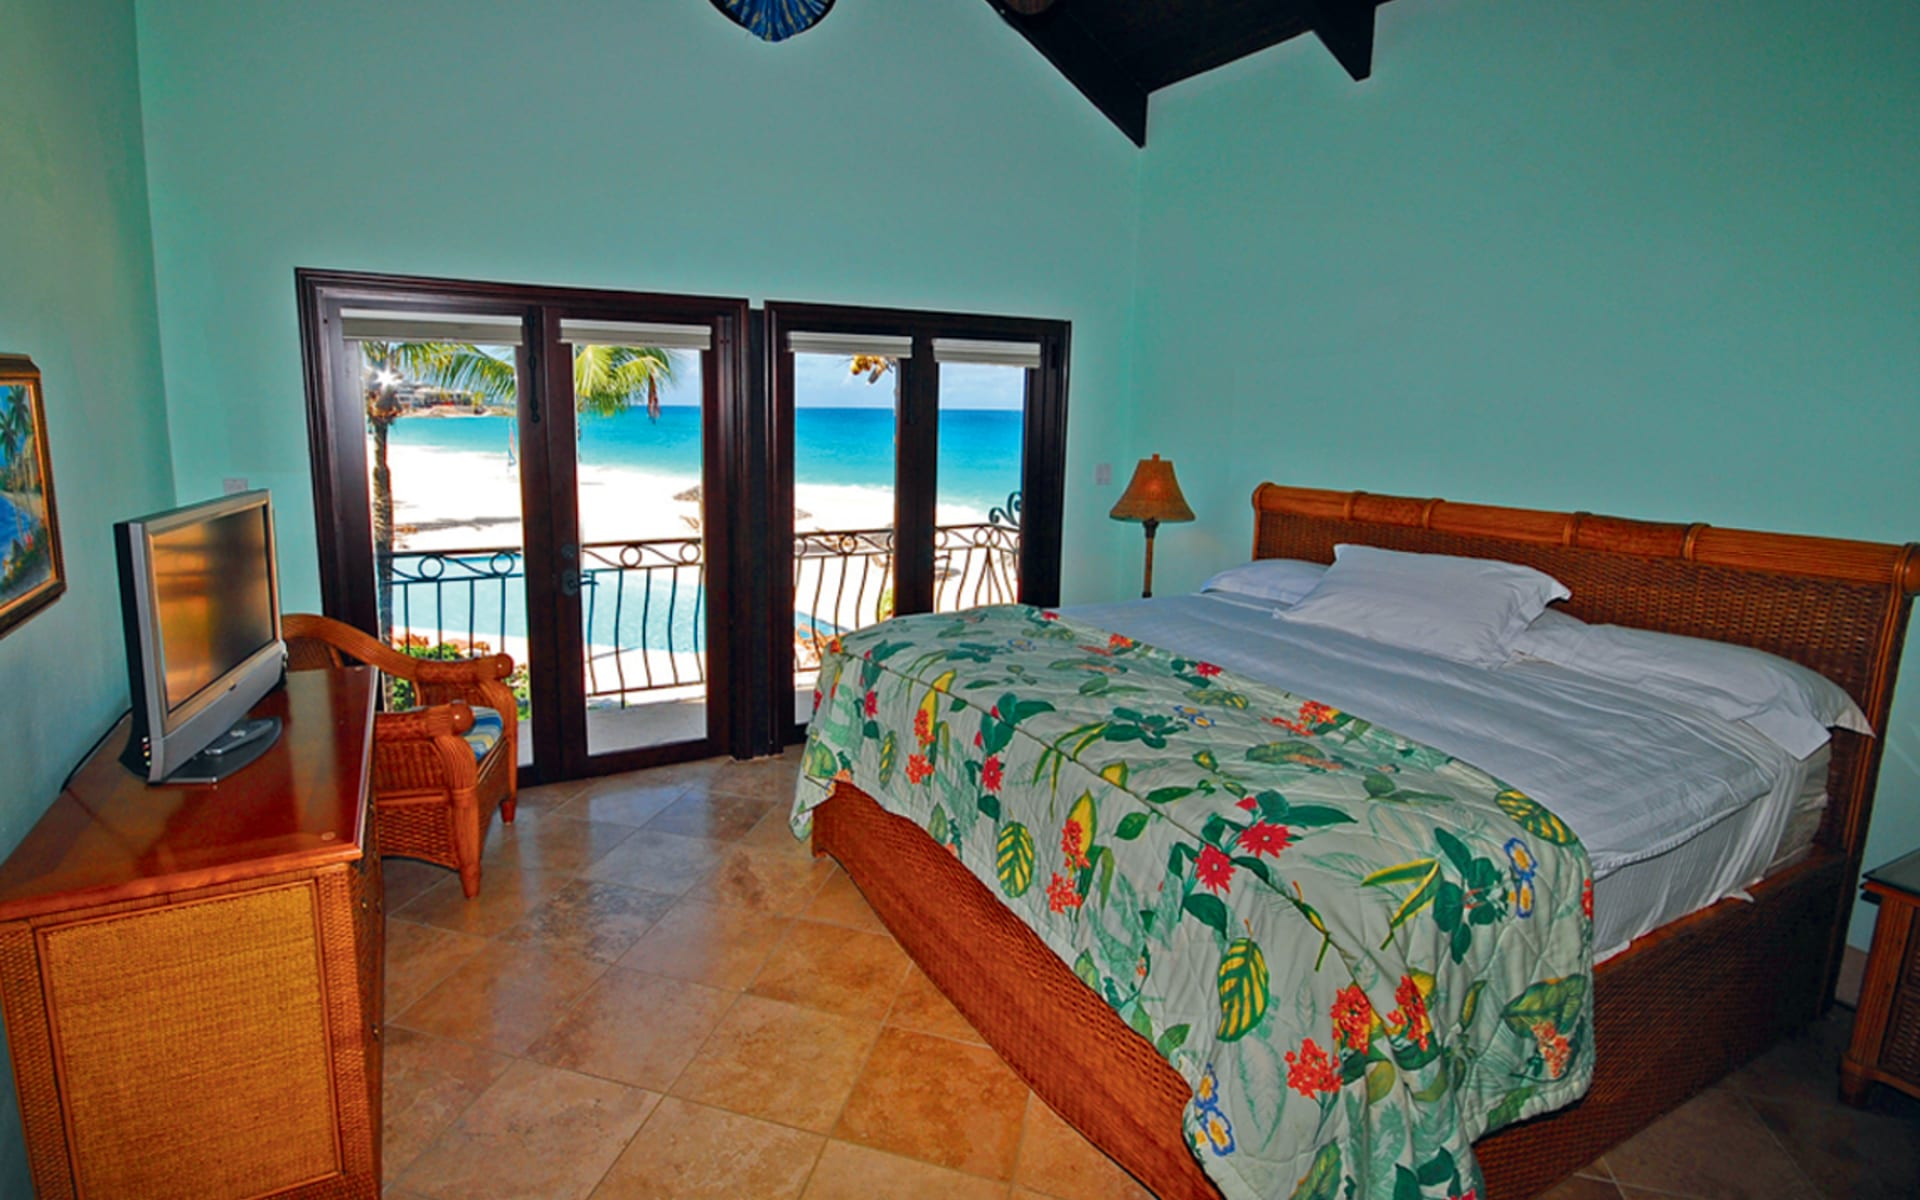 Frangipani Beach Resort in Meads Bay: zimmer frangipani beach resort doppelzimmer